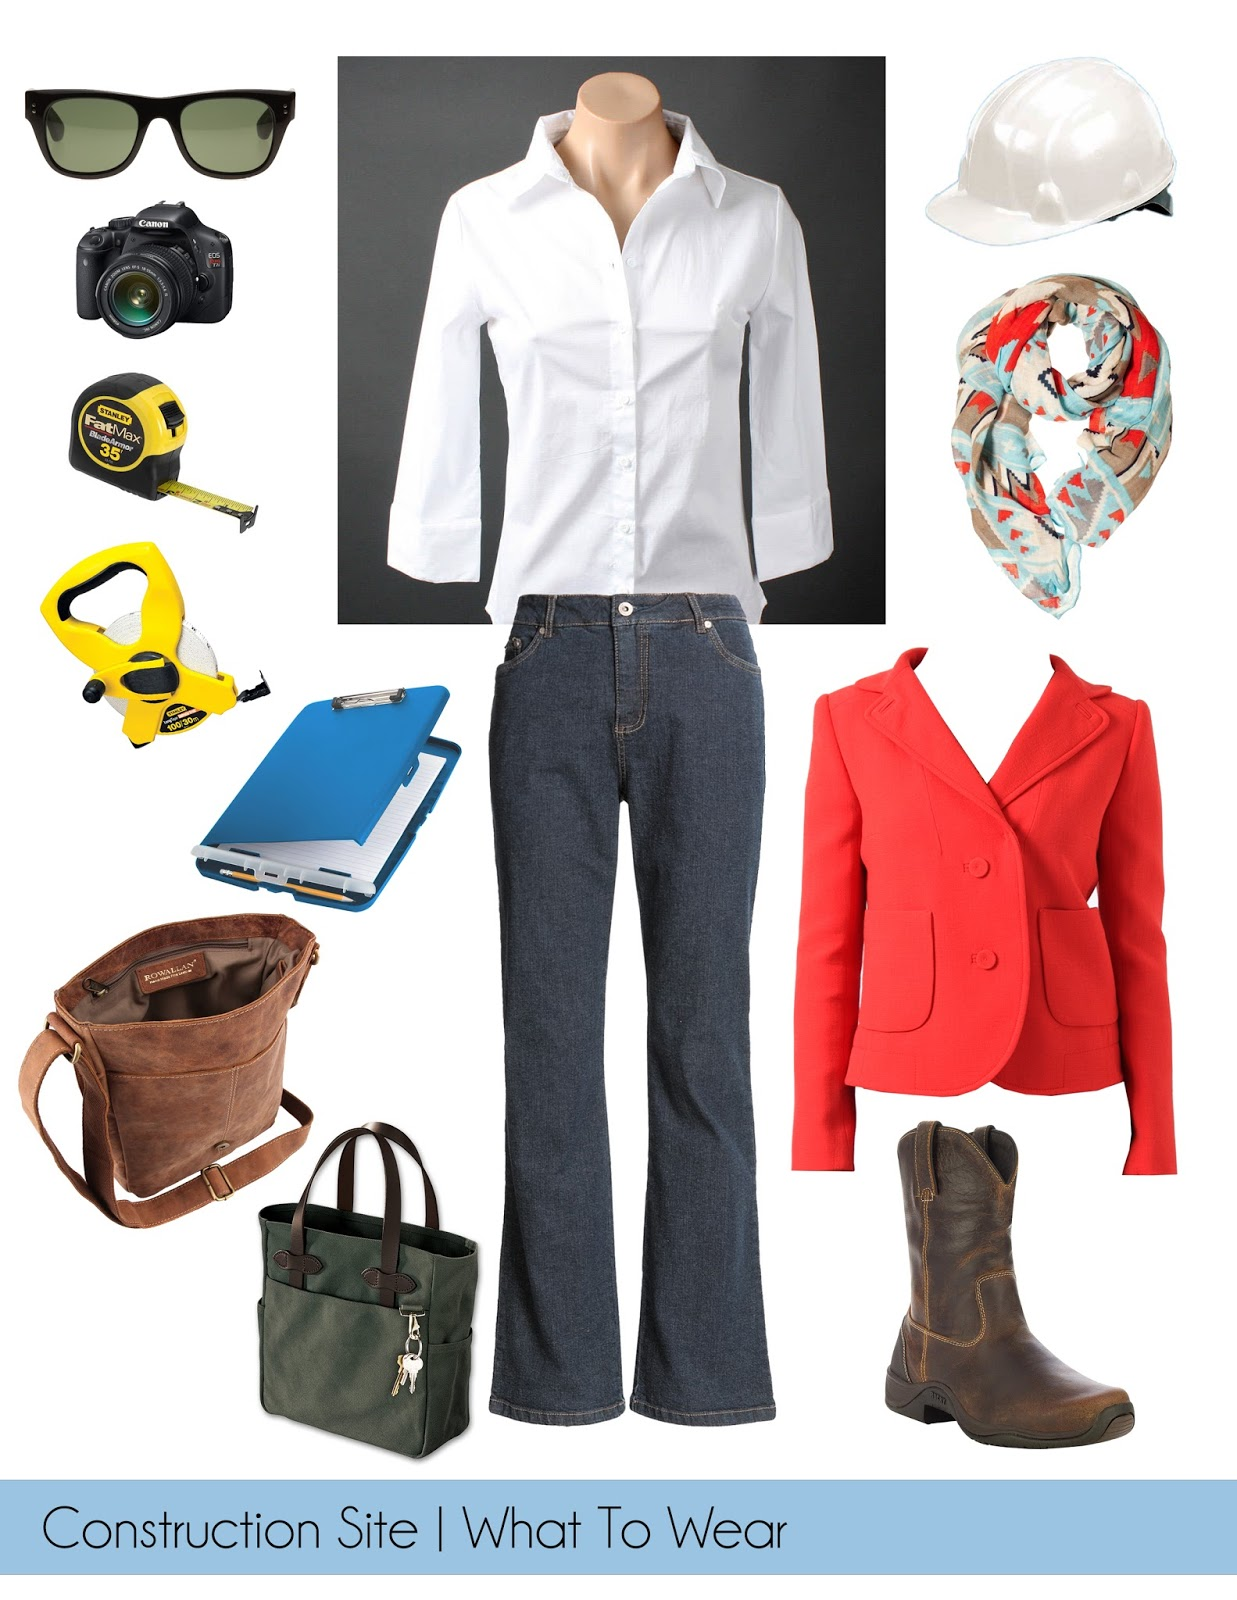 JPRchitect + Design: What to Wear | Construction Site